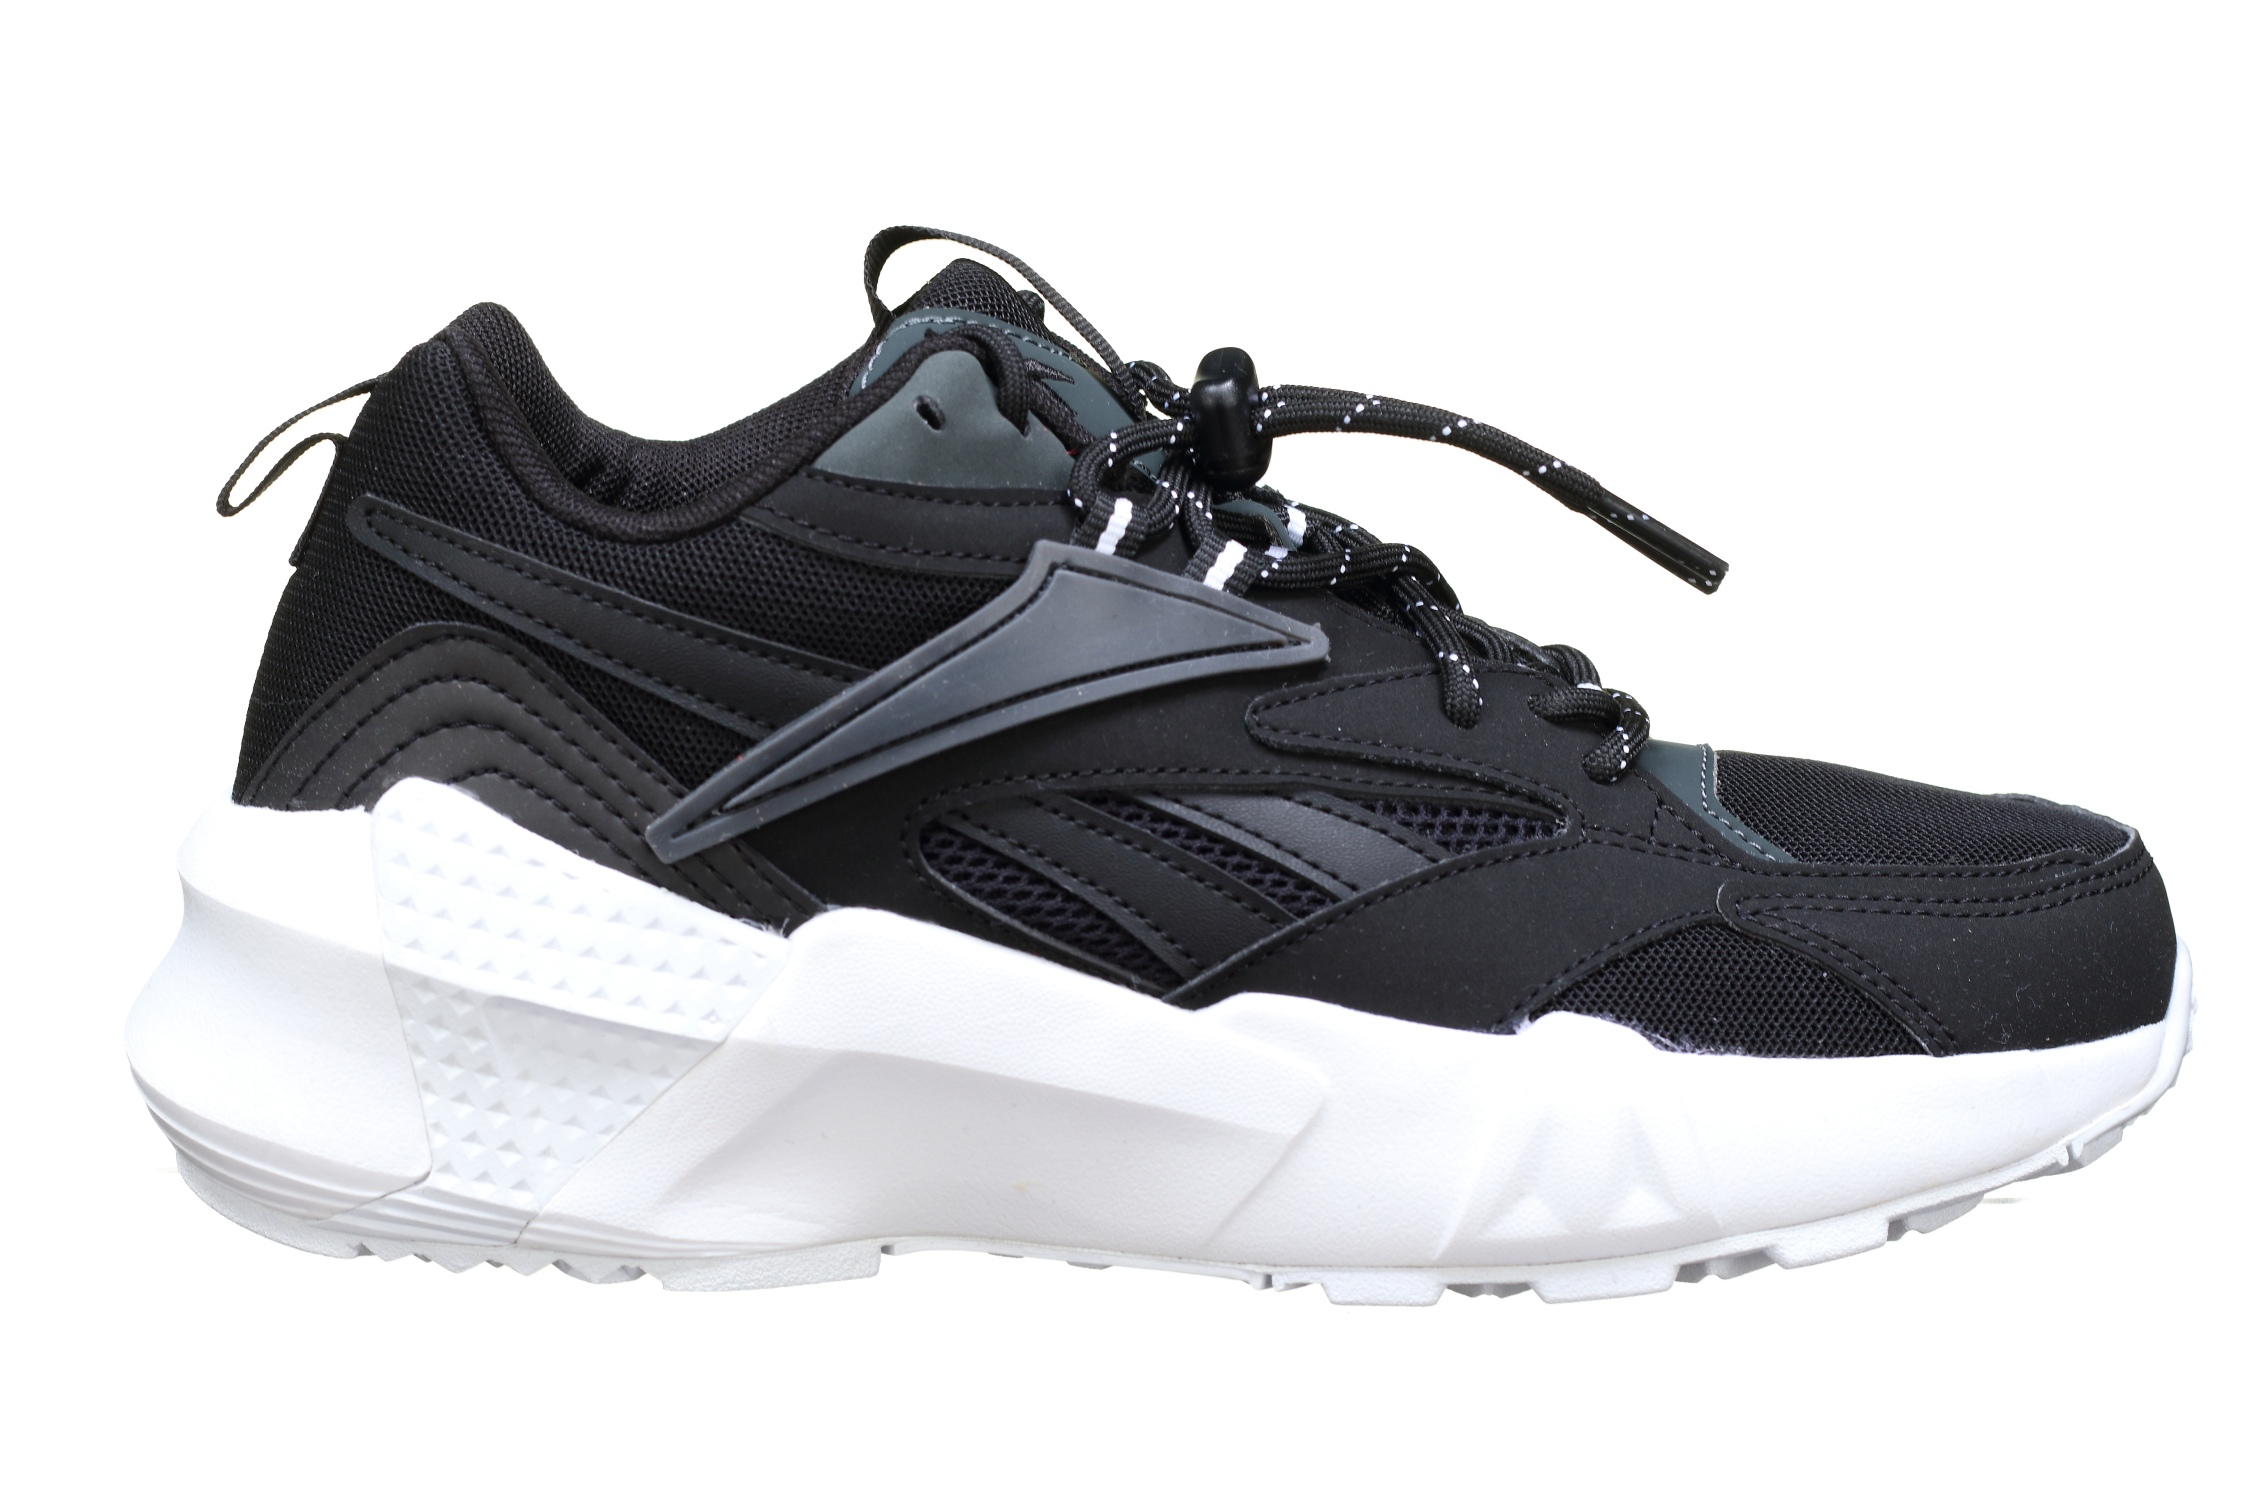 http://www.leadermode.com/177000/reebok-aztrek-double-mix-la-dv8173-black.jpg